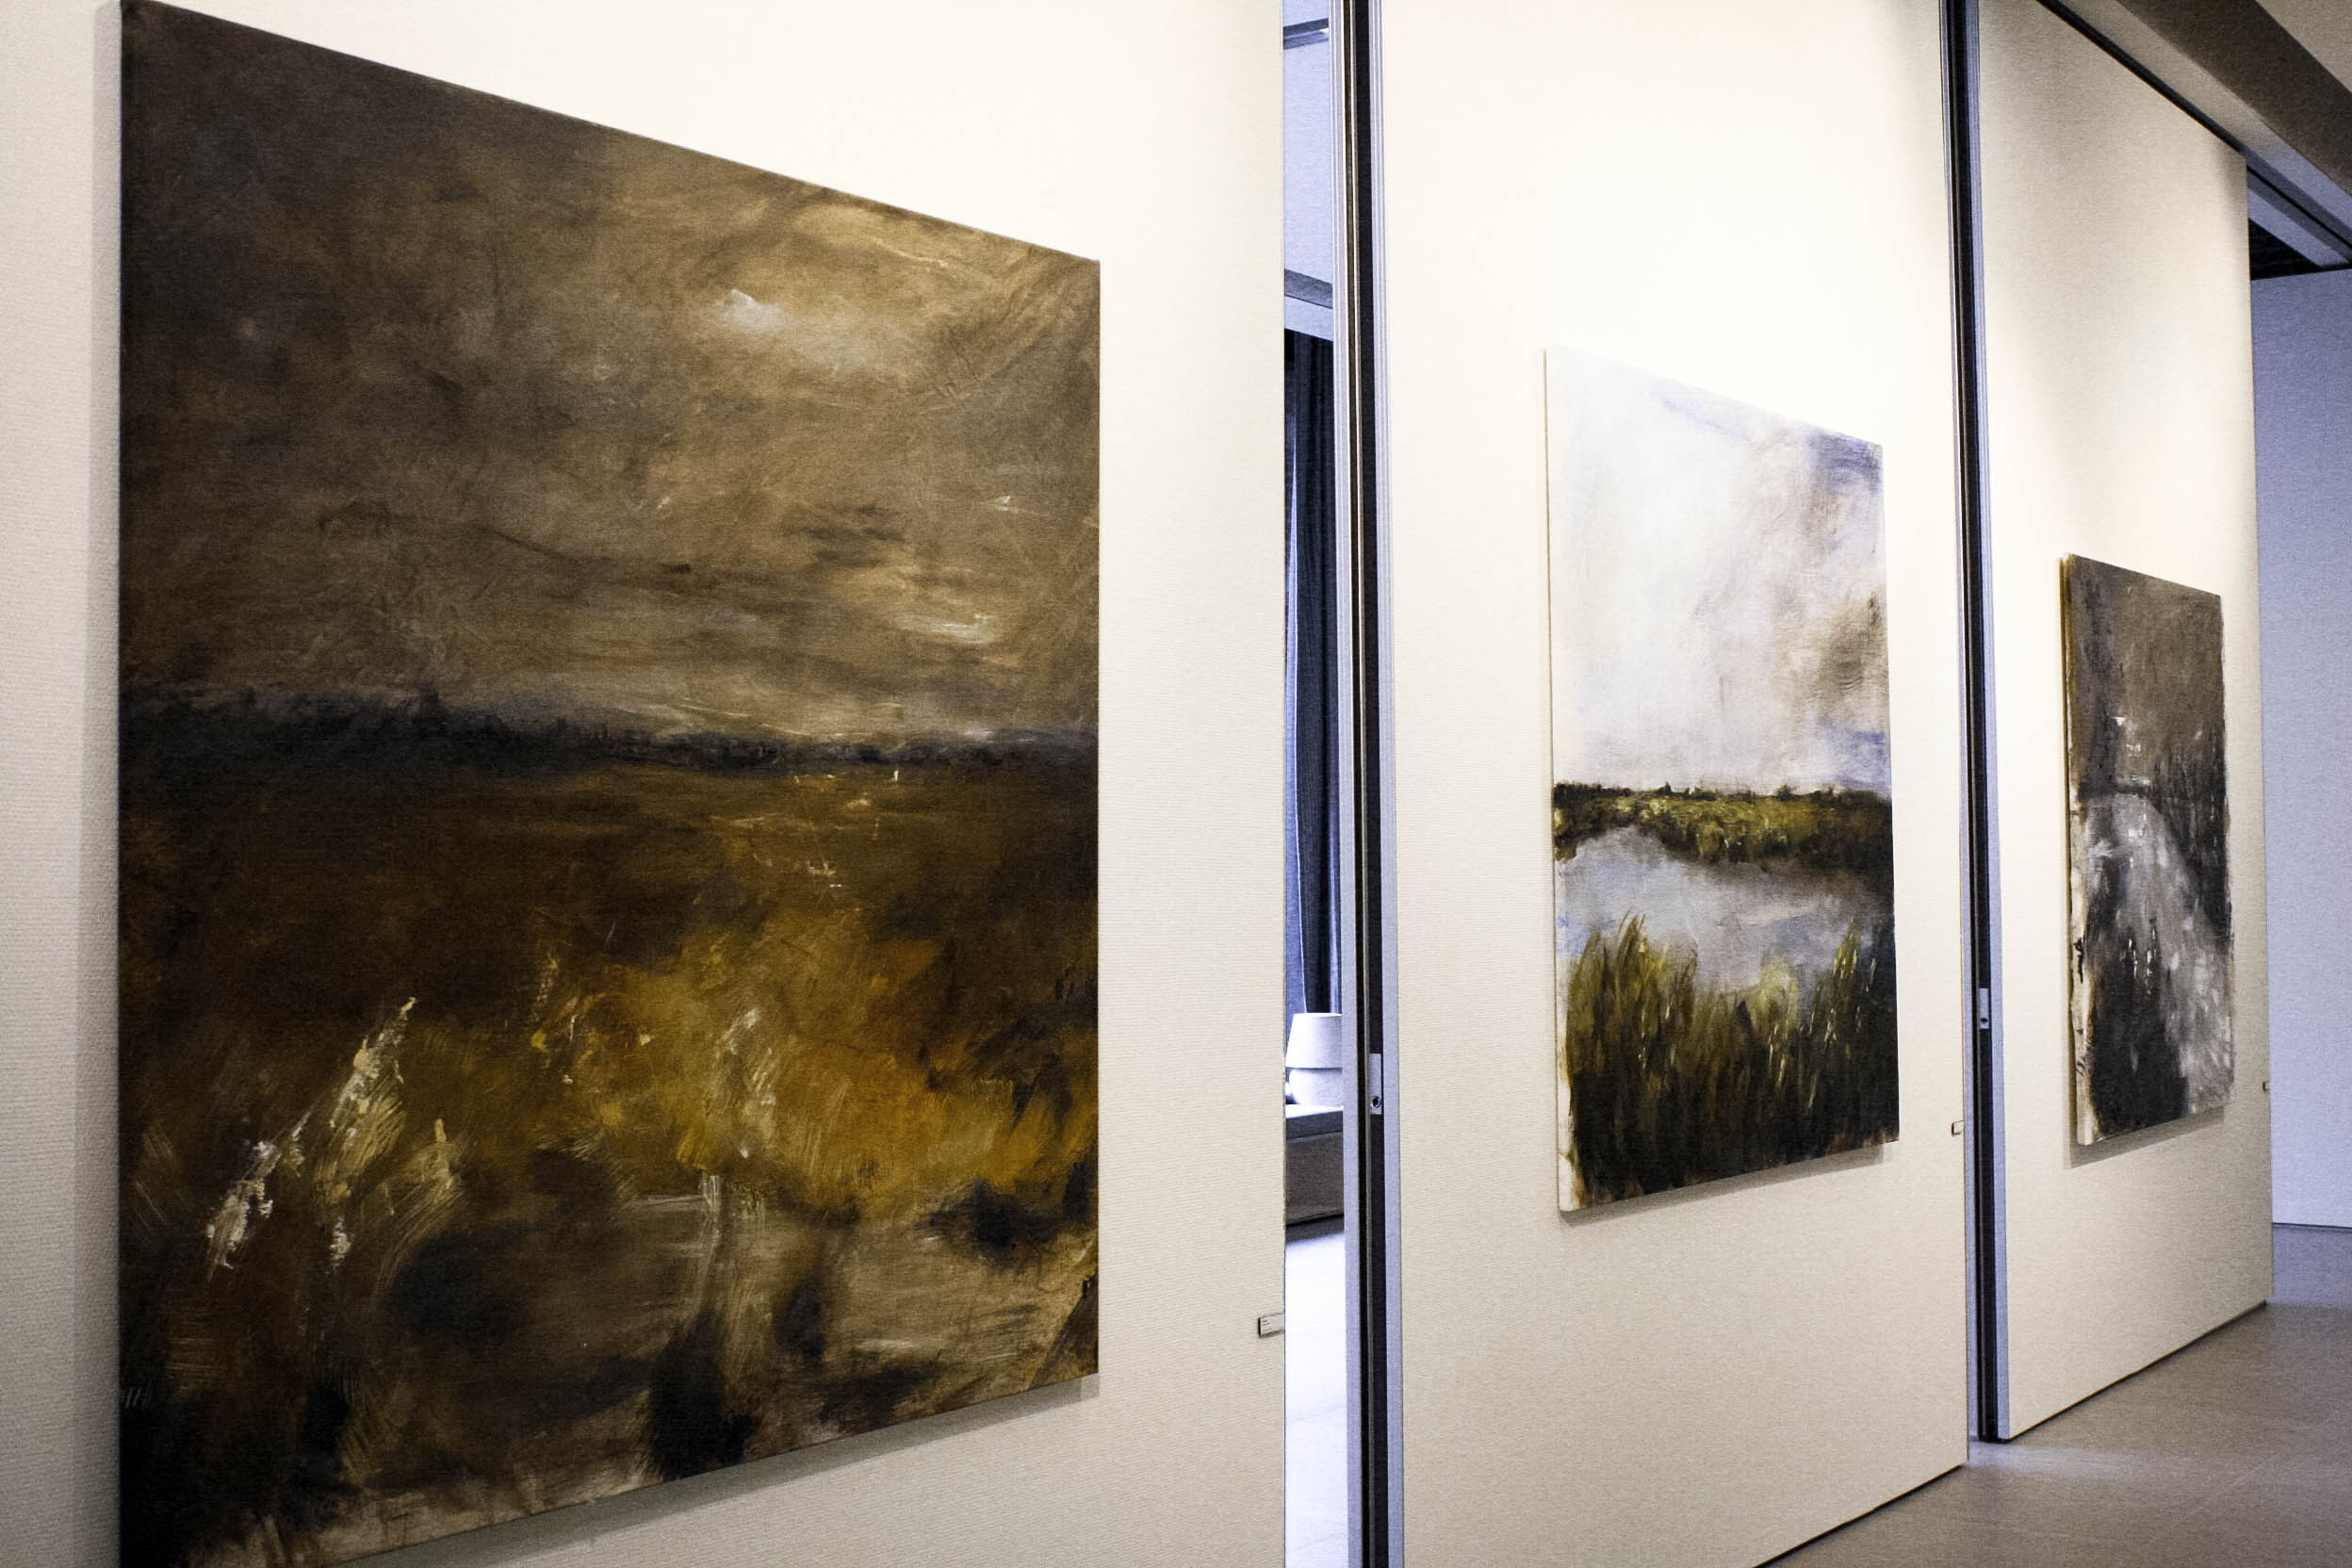 My final works at the art academy. From left to right: Culloden, Muiderslot and Towton.